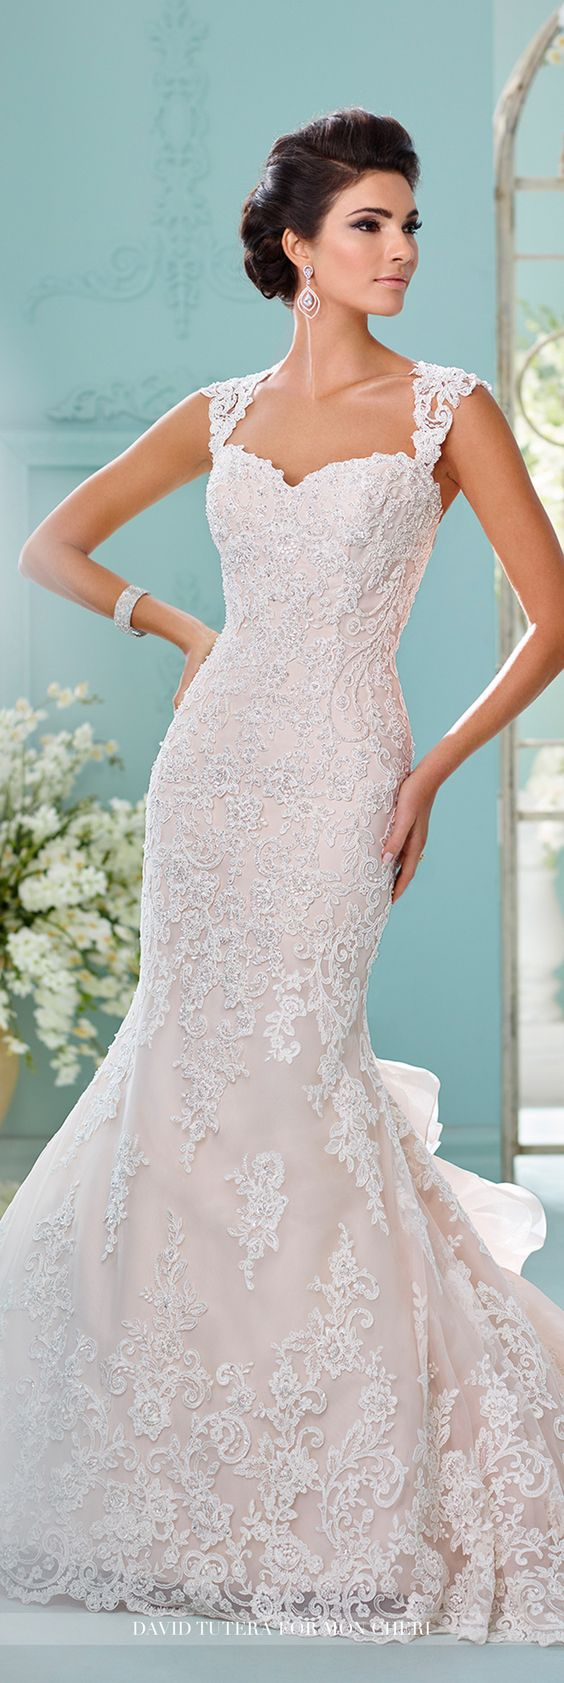 1000 ideas about queen anne neckline on pinterest for No back wedding dress